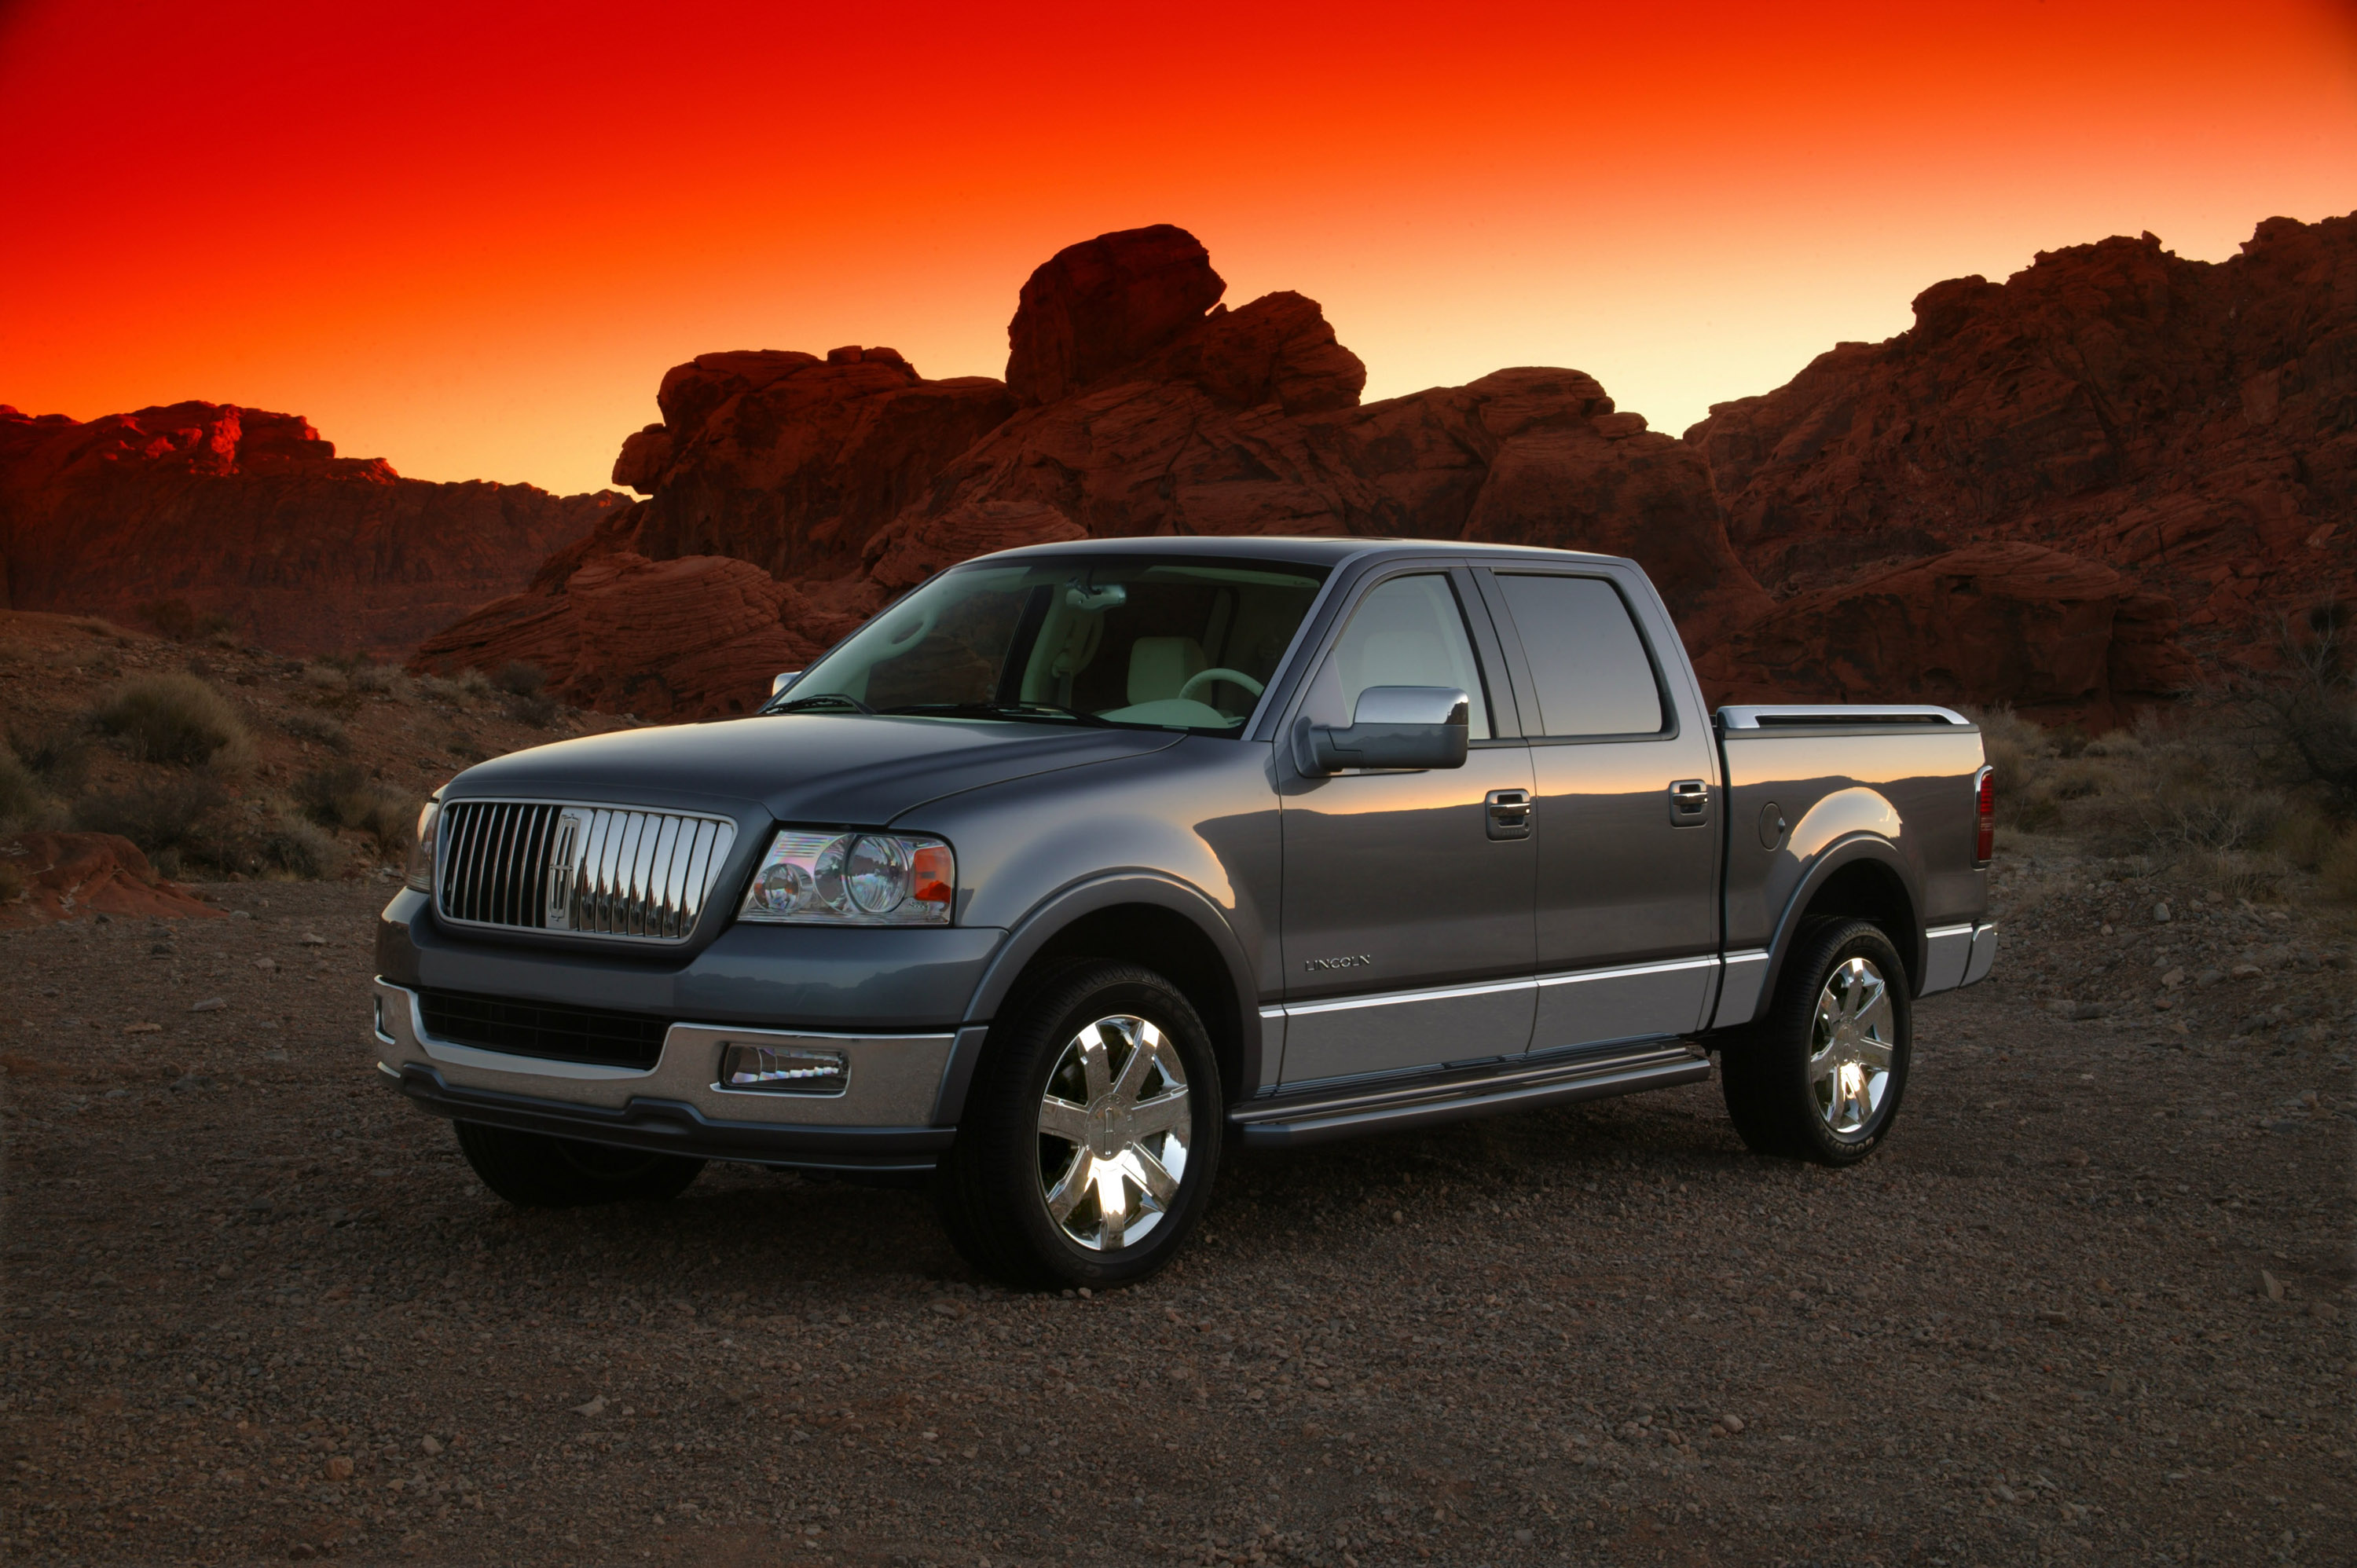 lt truck used for sale lincoln mark